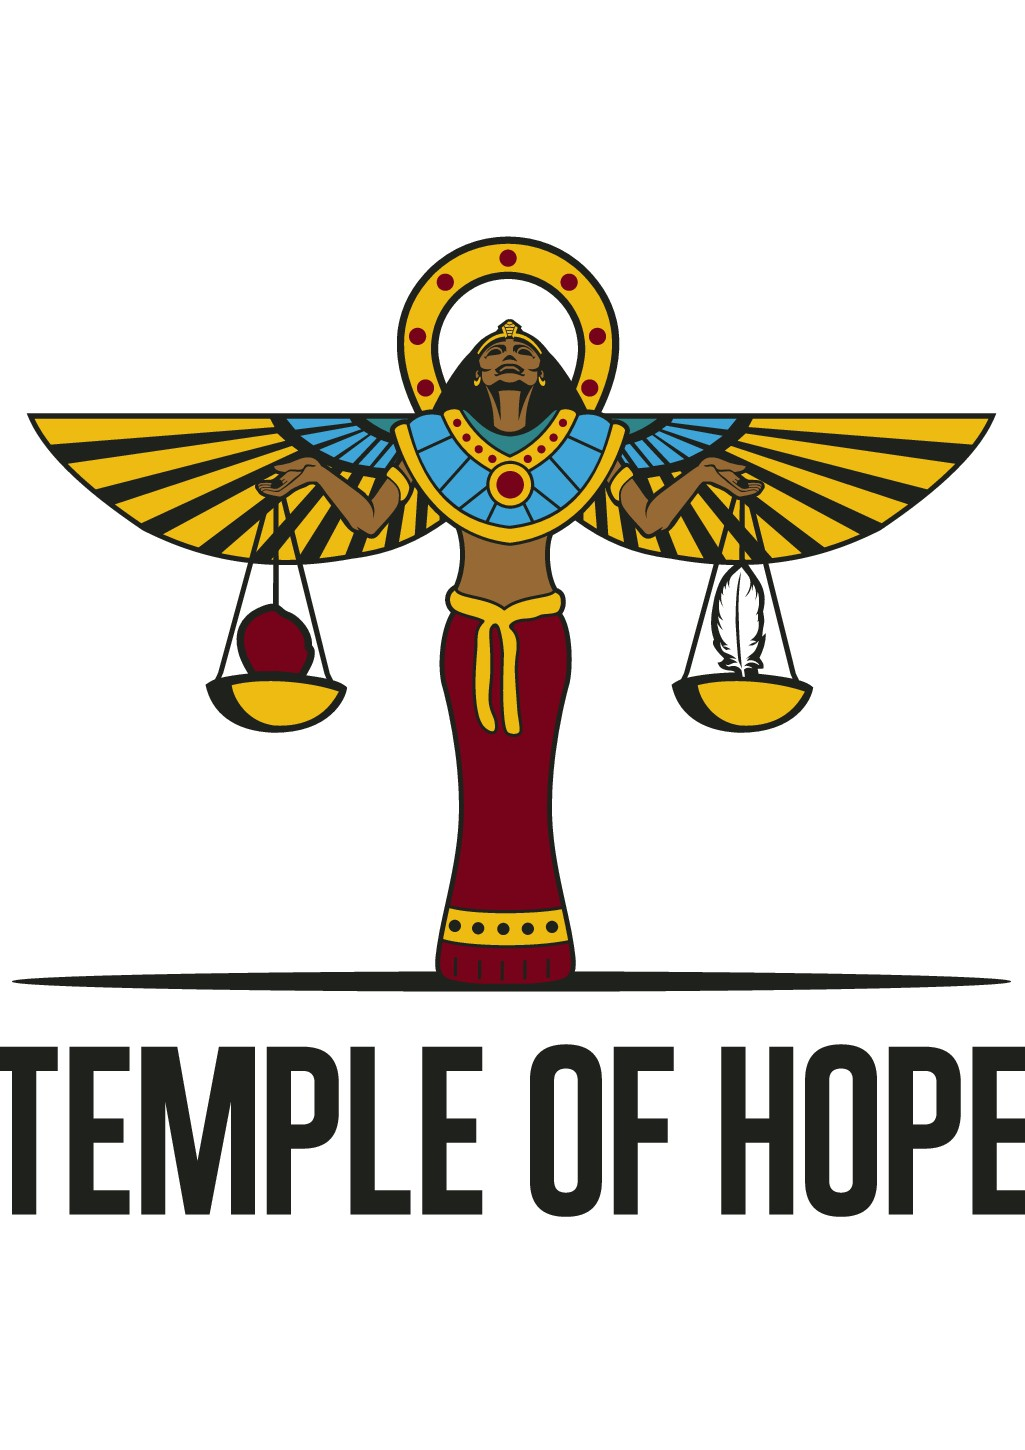 meaningful logo needed for temple